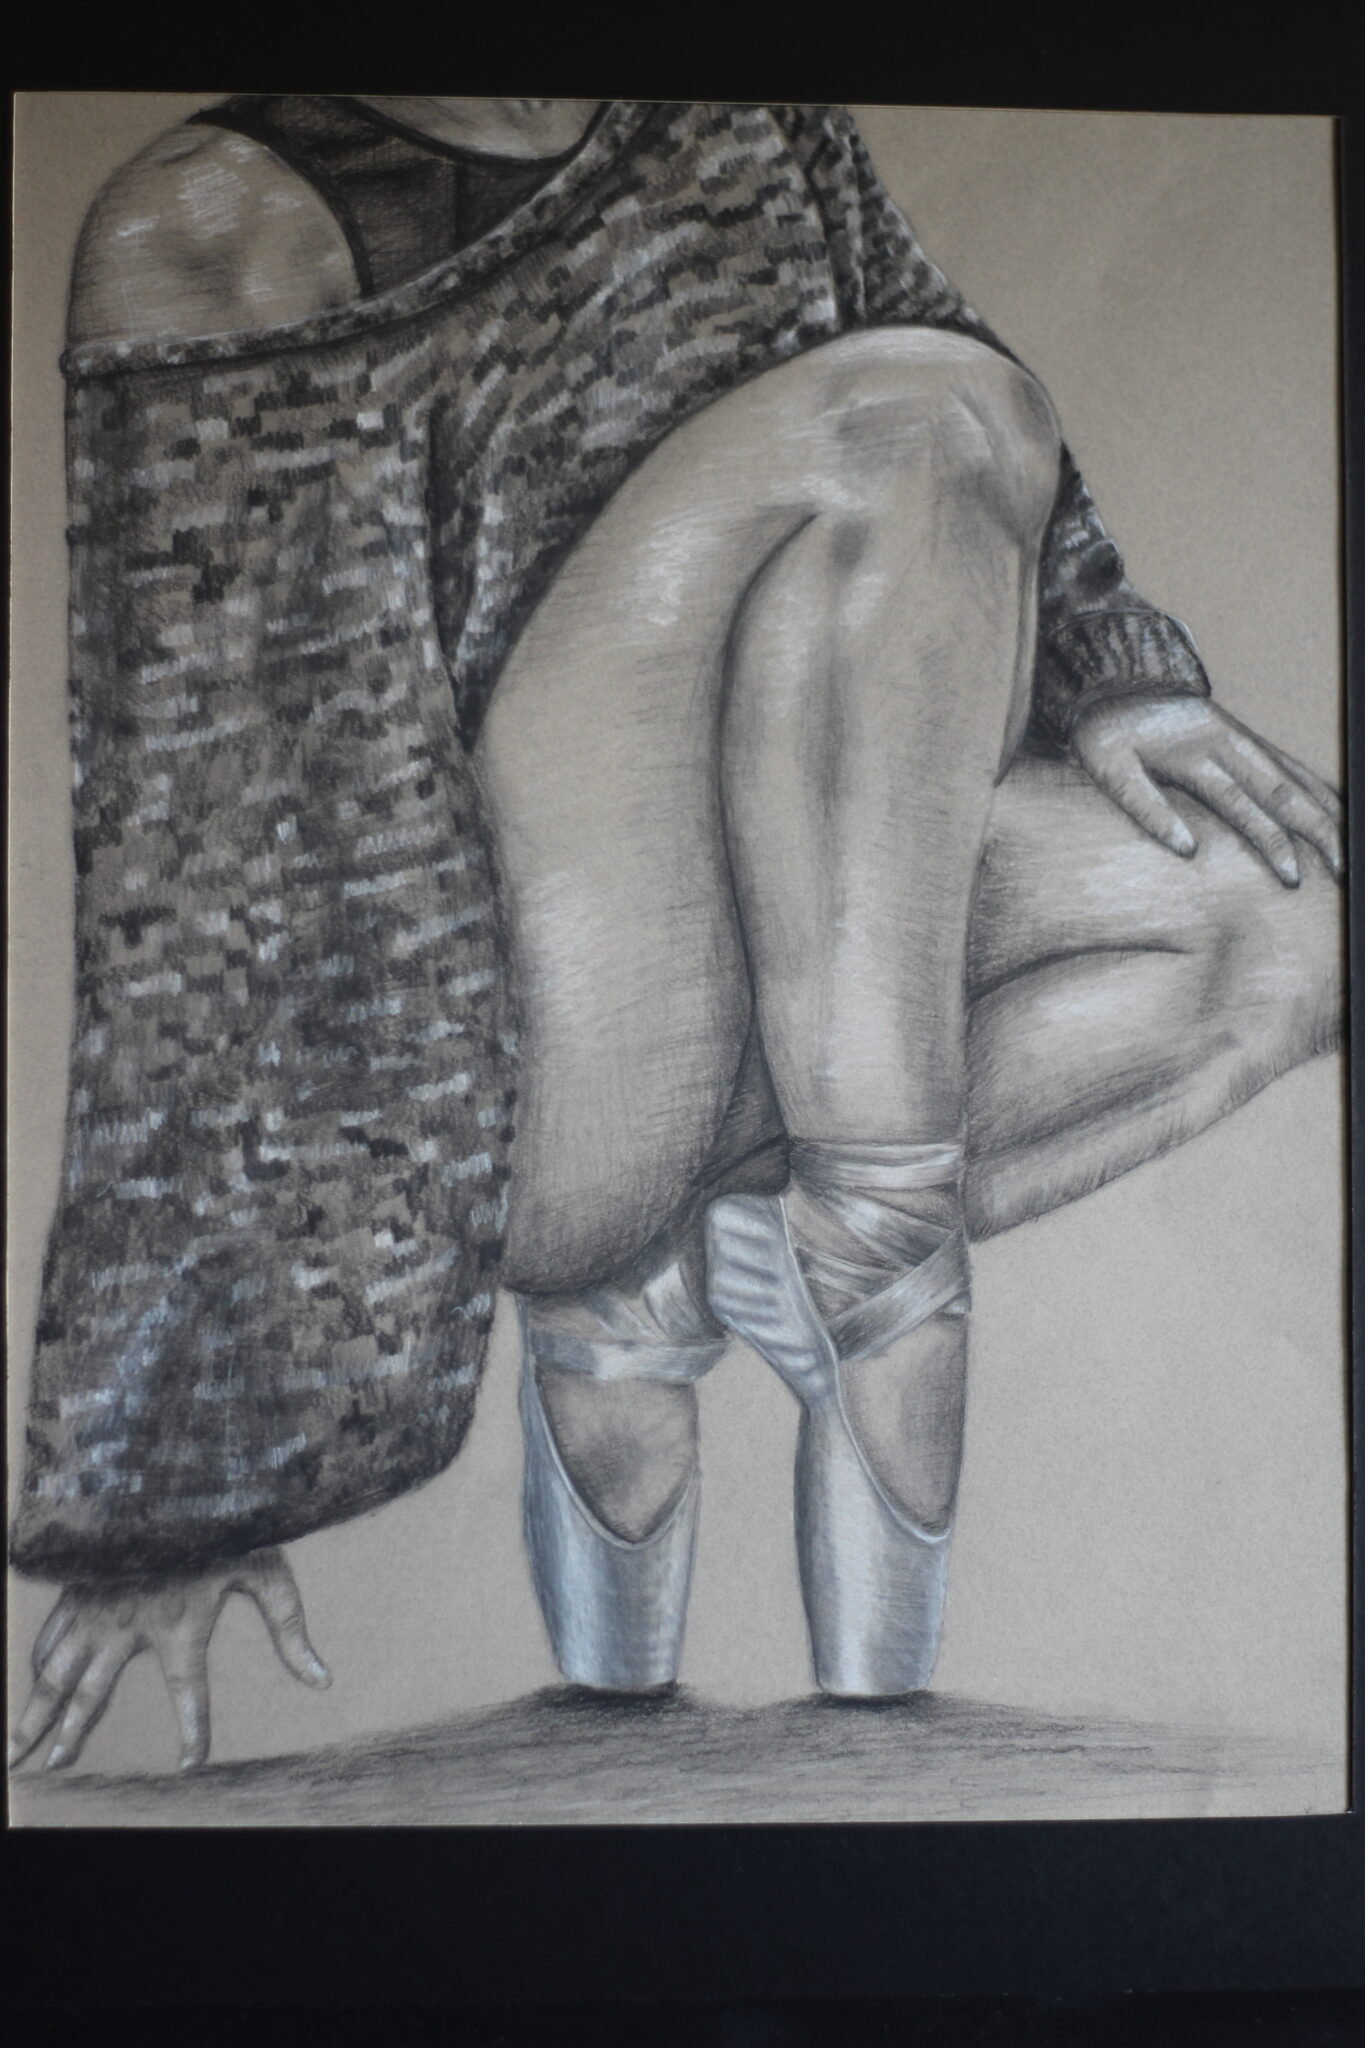 drawing of legs and ballet shoes on